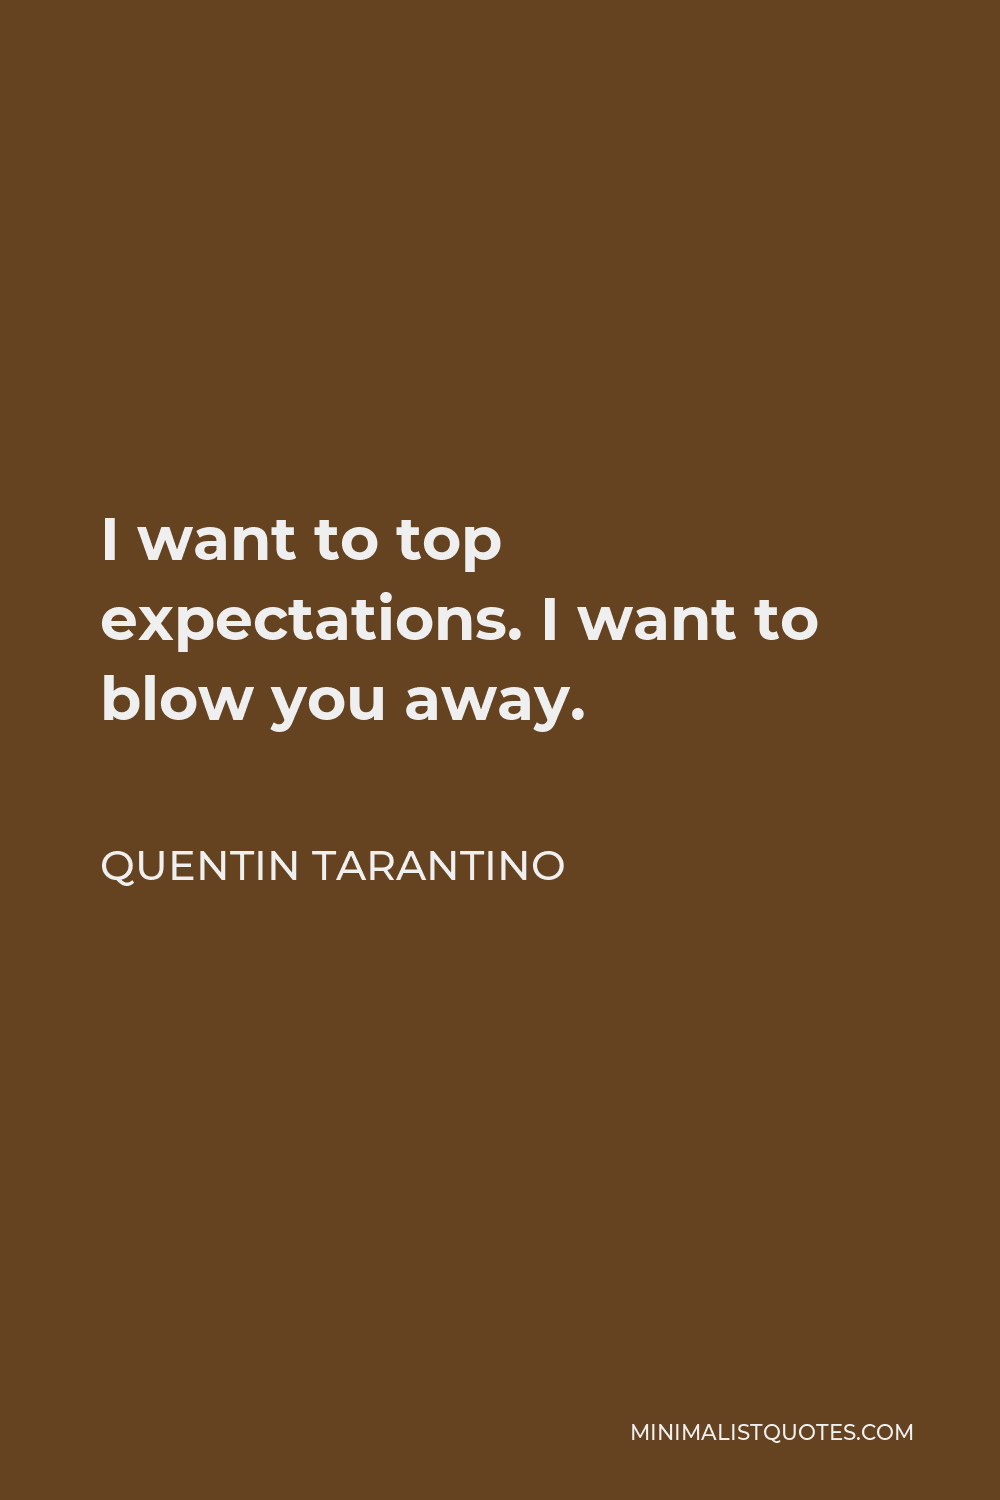 Quentin Tarantino Quote - I want to top expectations. I want to blow you away.